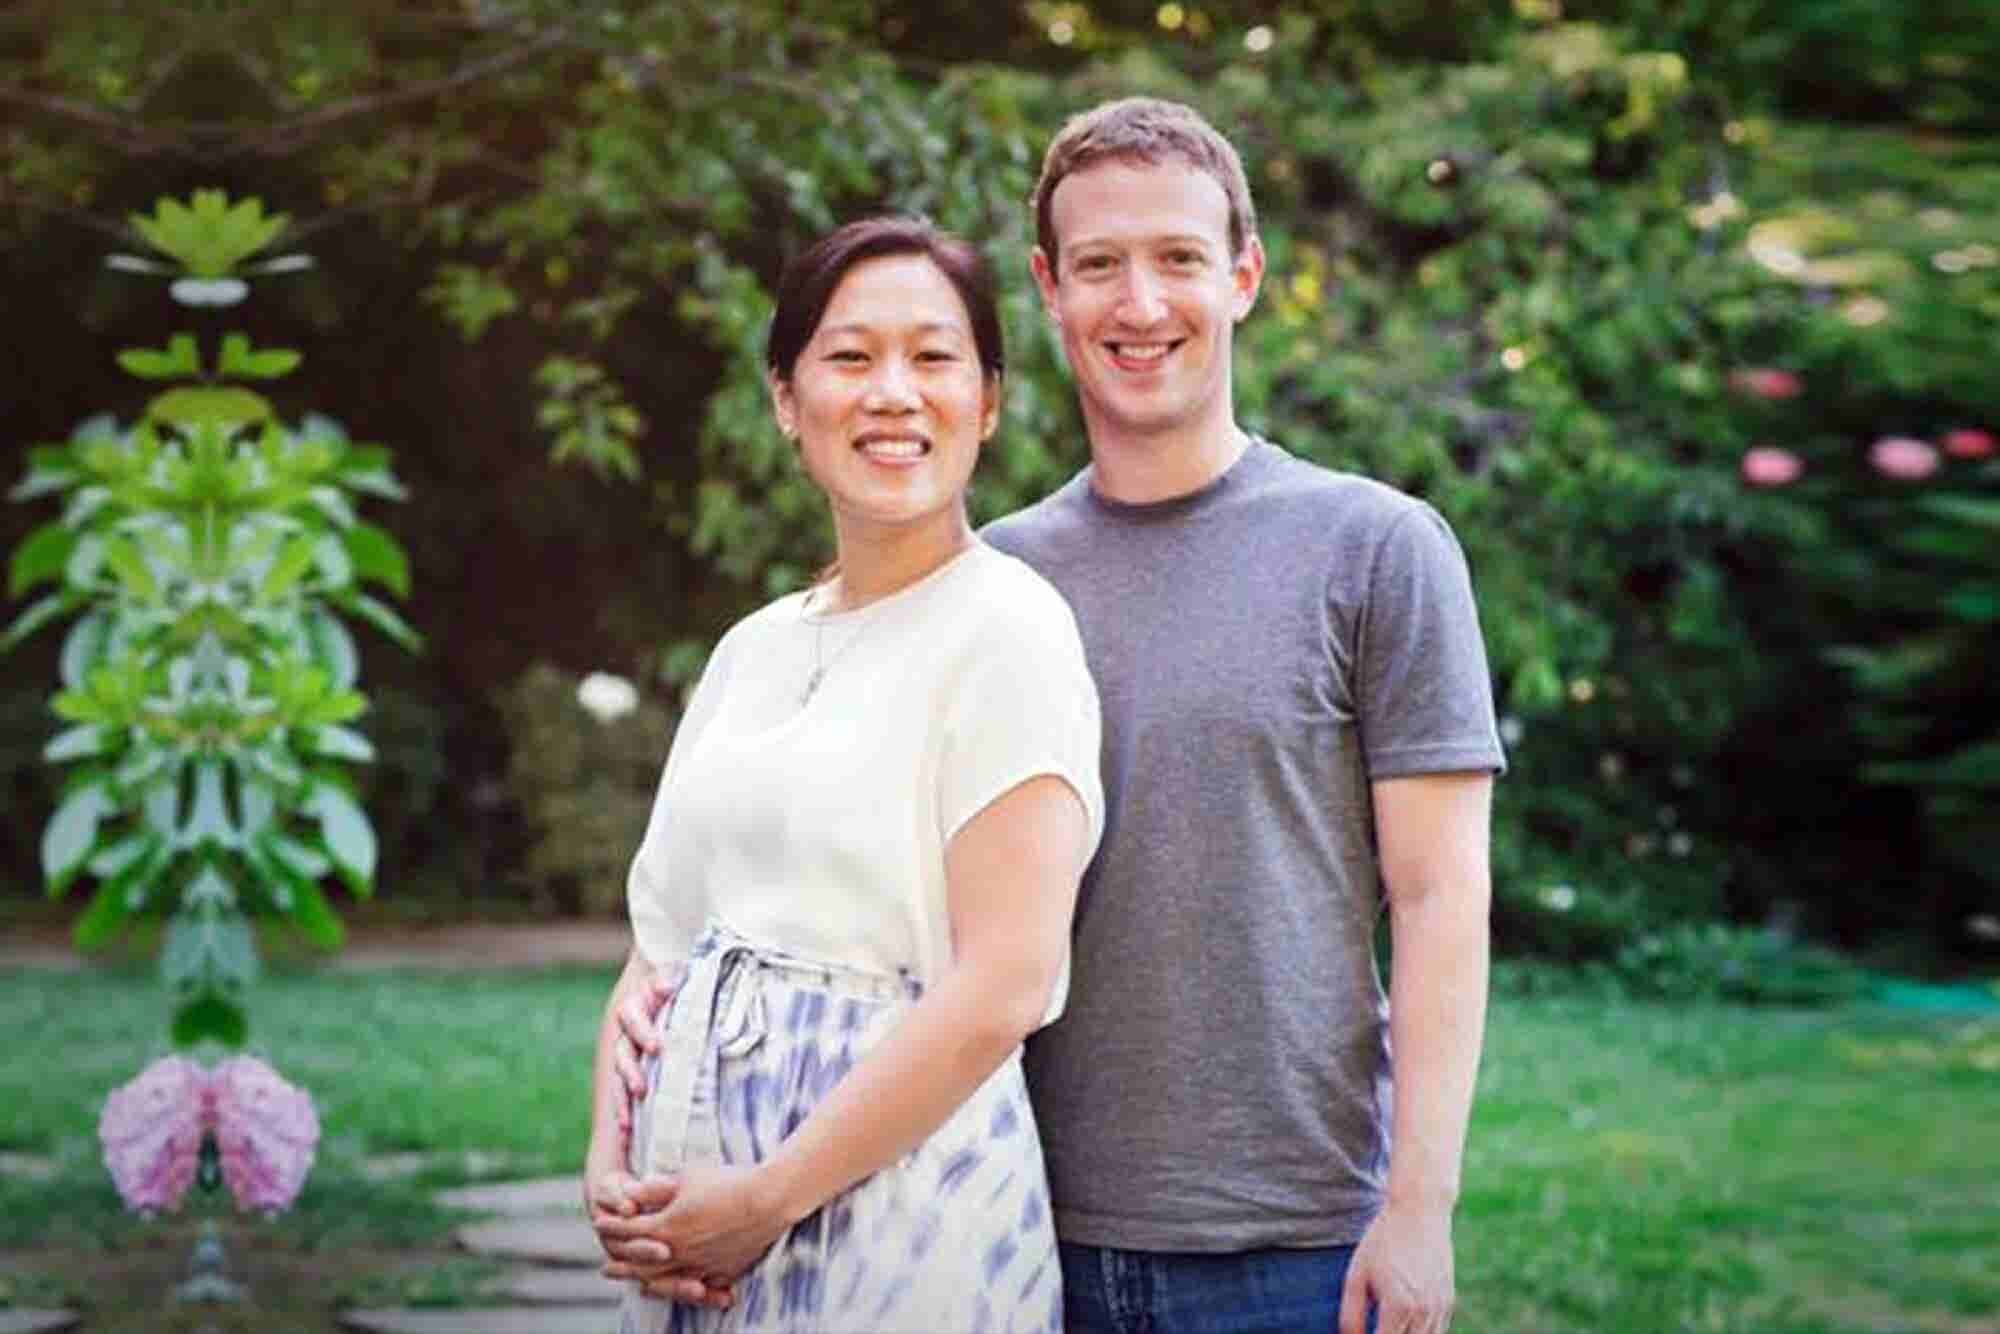 Mark Zuckerberg and His Wife Are Expecting a Baby Girl